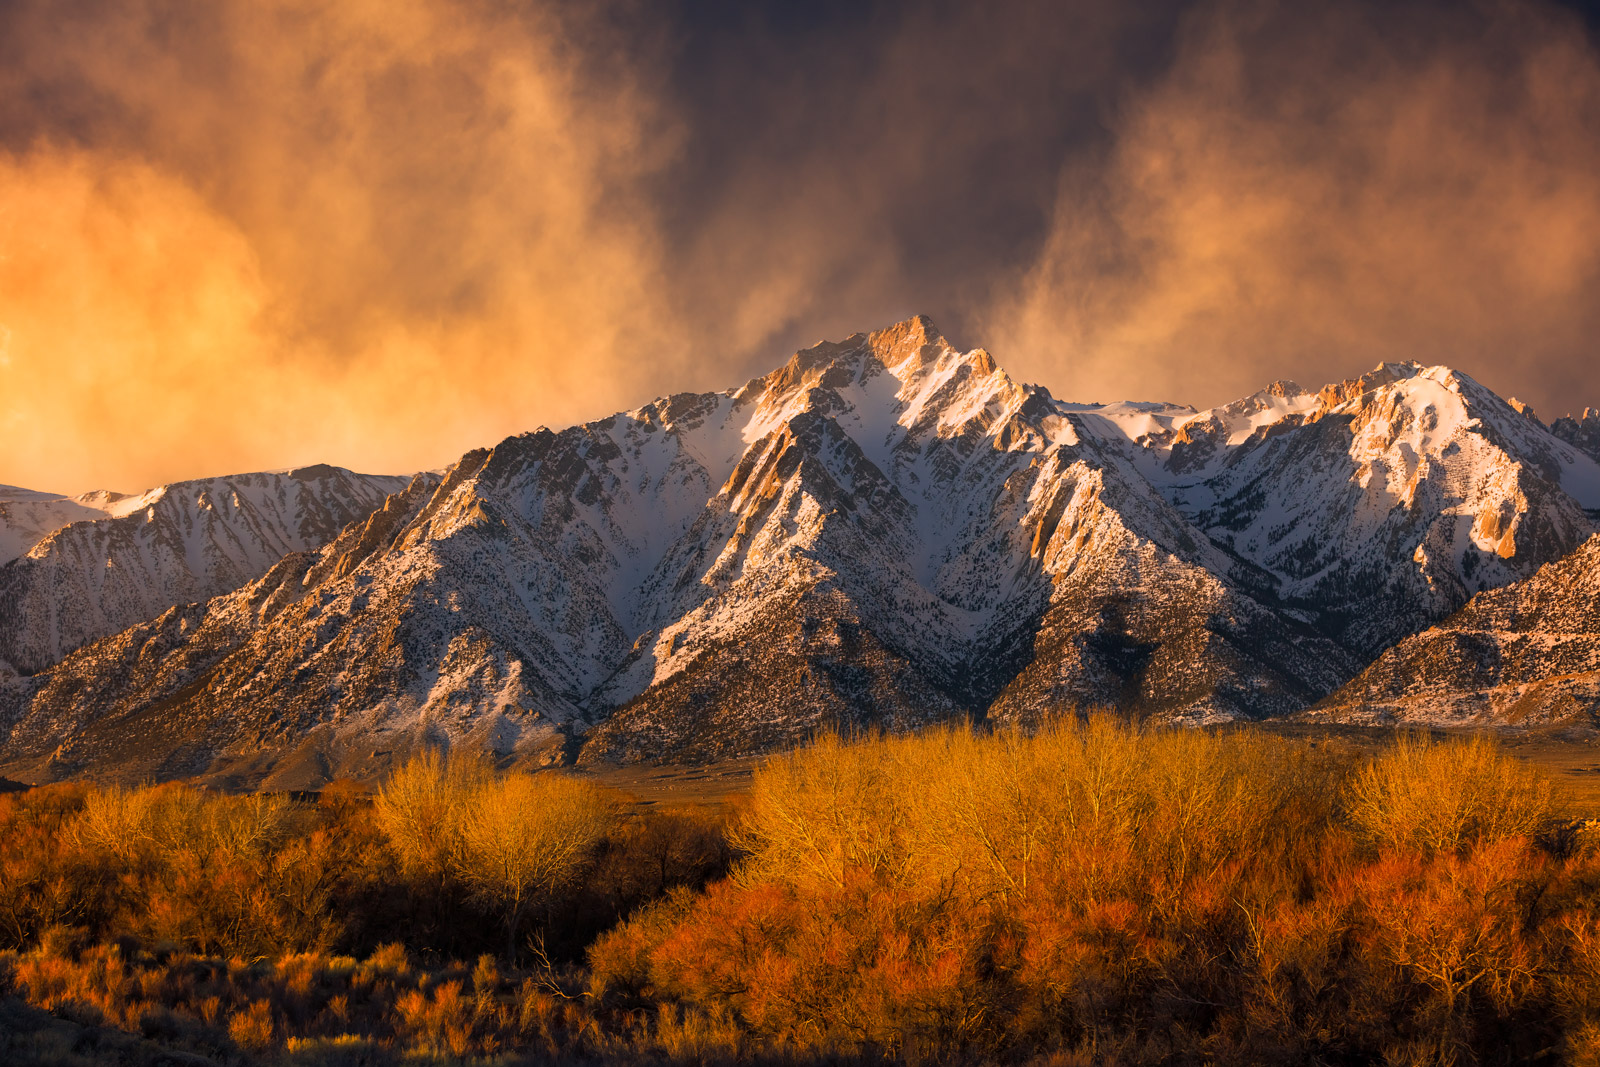 California, Eastern Sierra, Winter, Sunrise, limited edition, photograph, fine art, landscape, photo